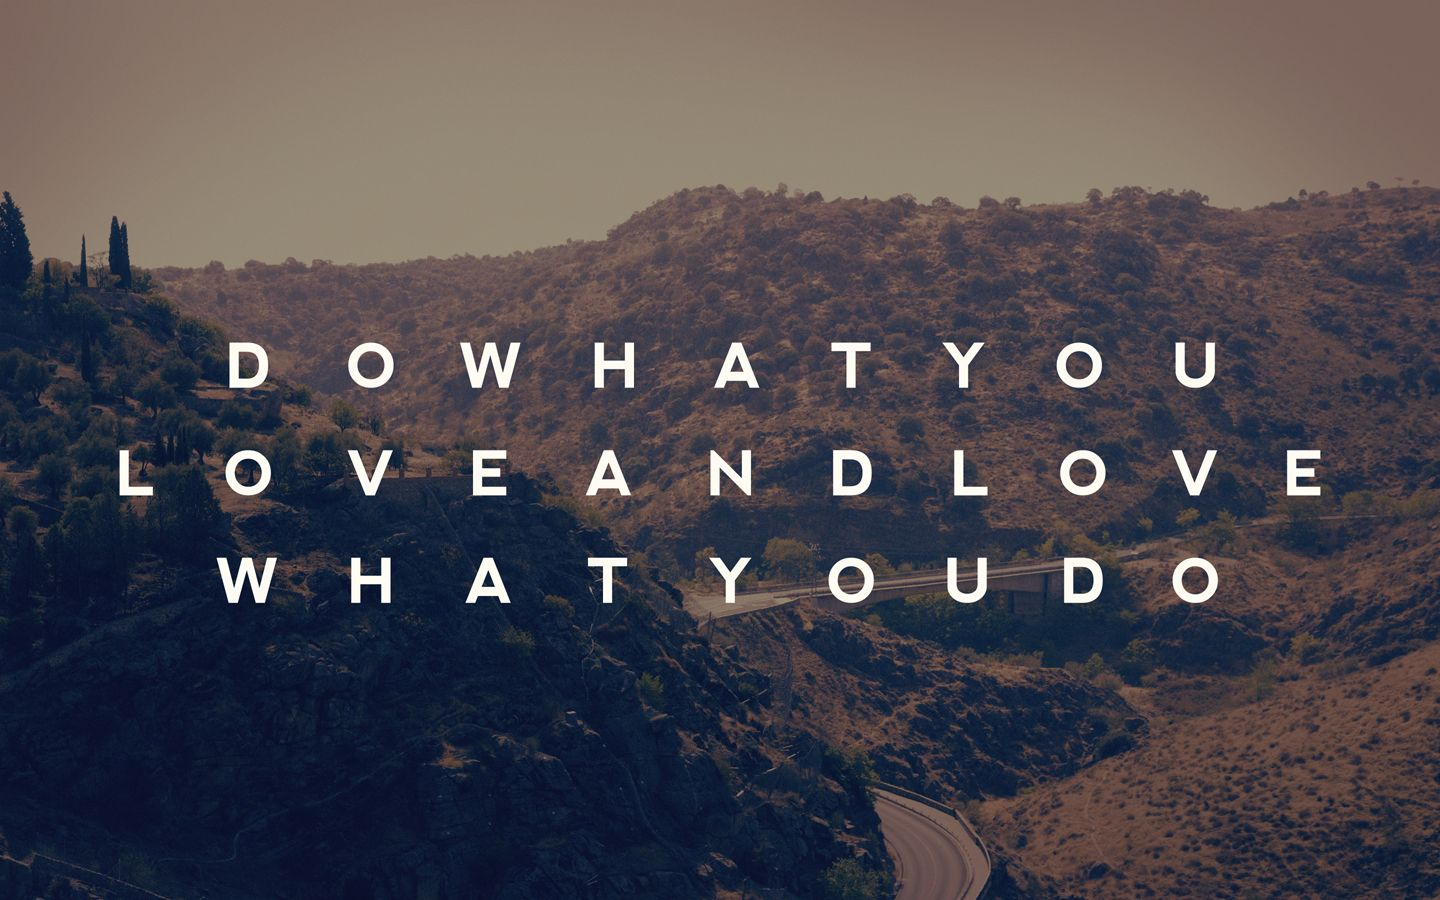 Wallpaper Love Quotes Tumblr : background tumblr hipster quotes - Google Search hipster Pinterest Hipster wallpaper and ...